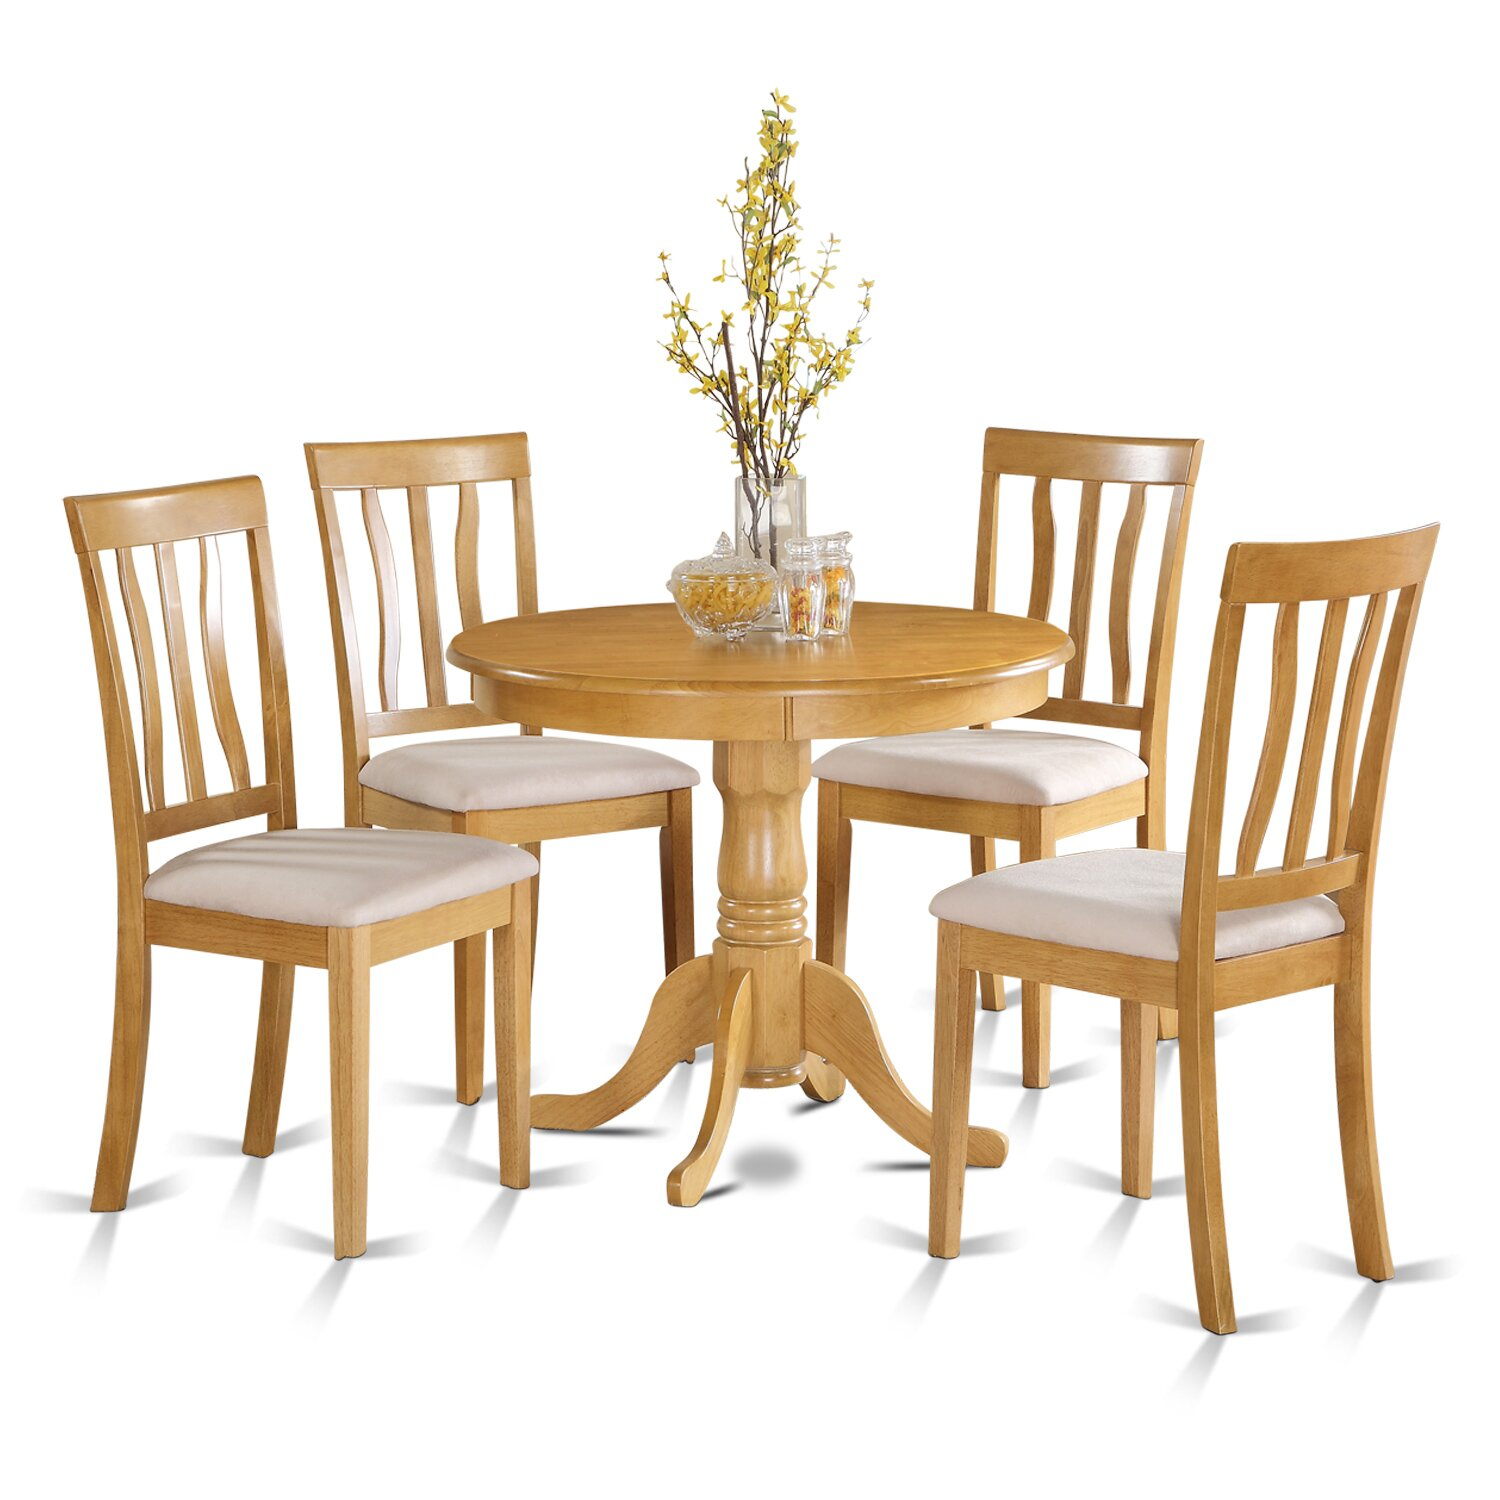 Wooden importers 5 piece dining set reviews wayfair for Kitchen dining room chairs